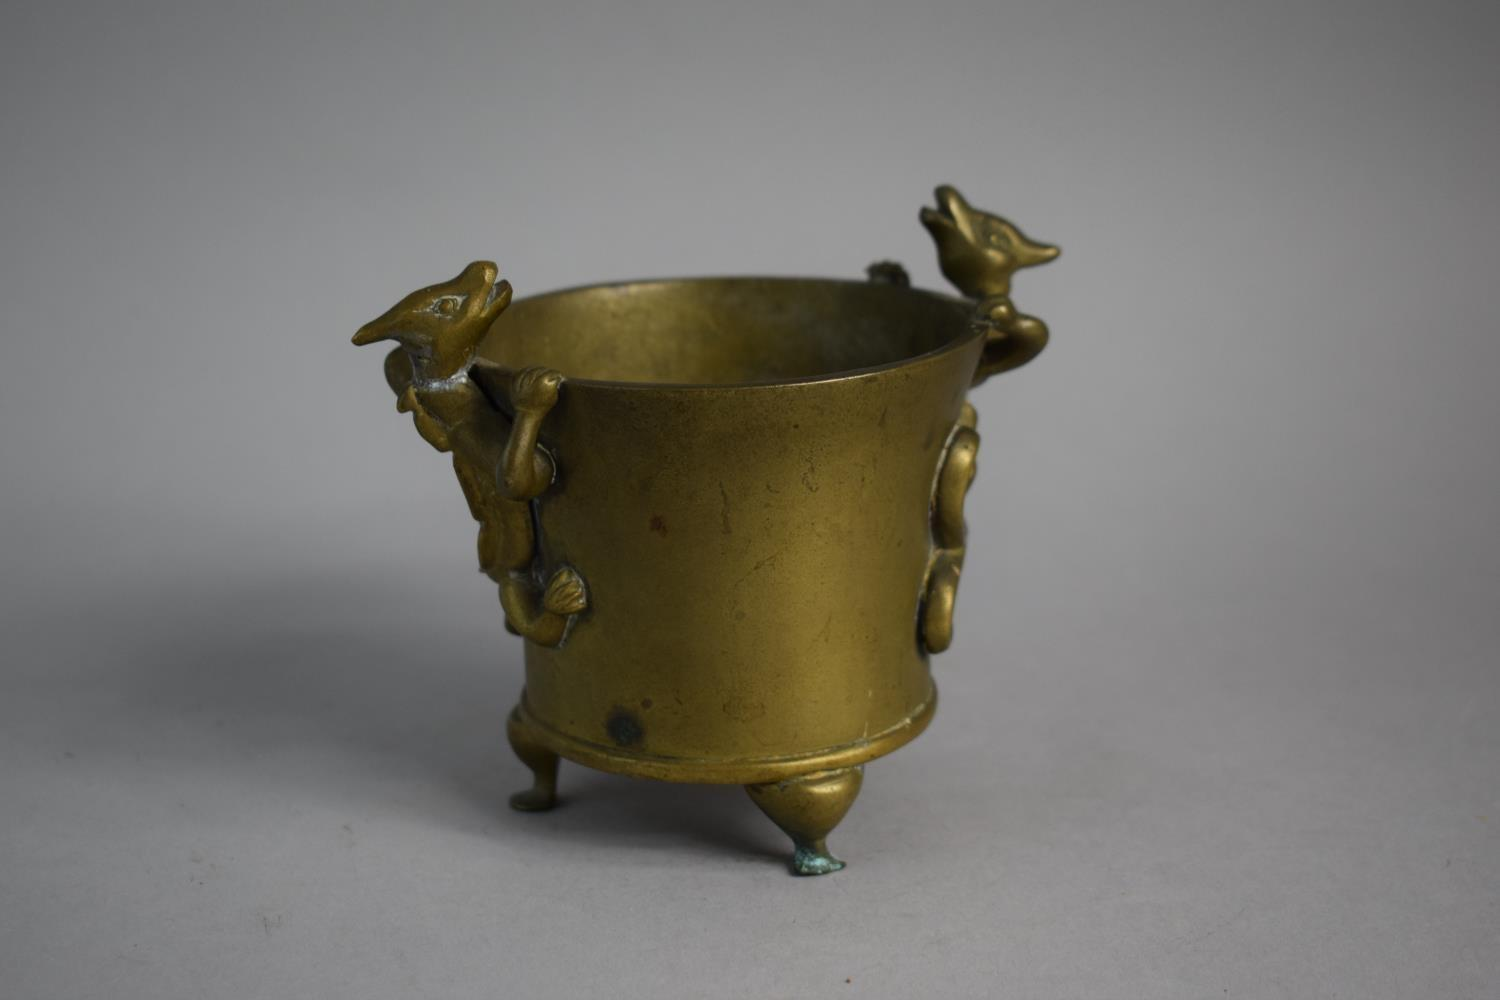 Lot 119 - A Chinese Bronze Censer on Three Feet having Pair of Climbing Dragons as Handles. Impressed Six